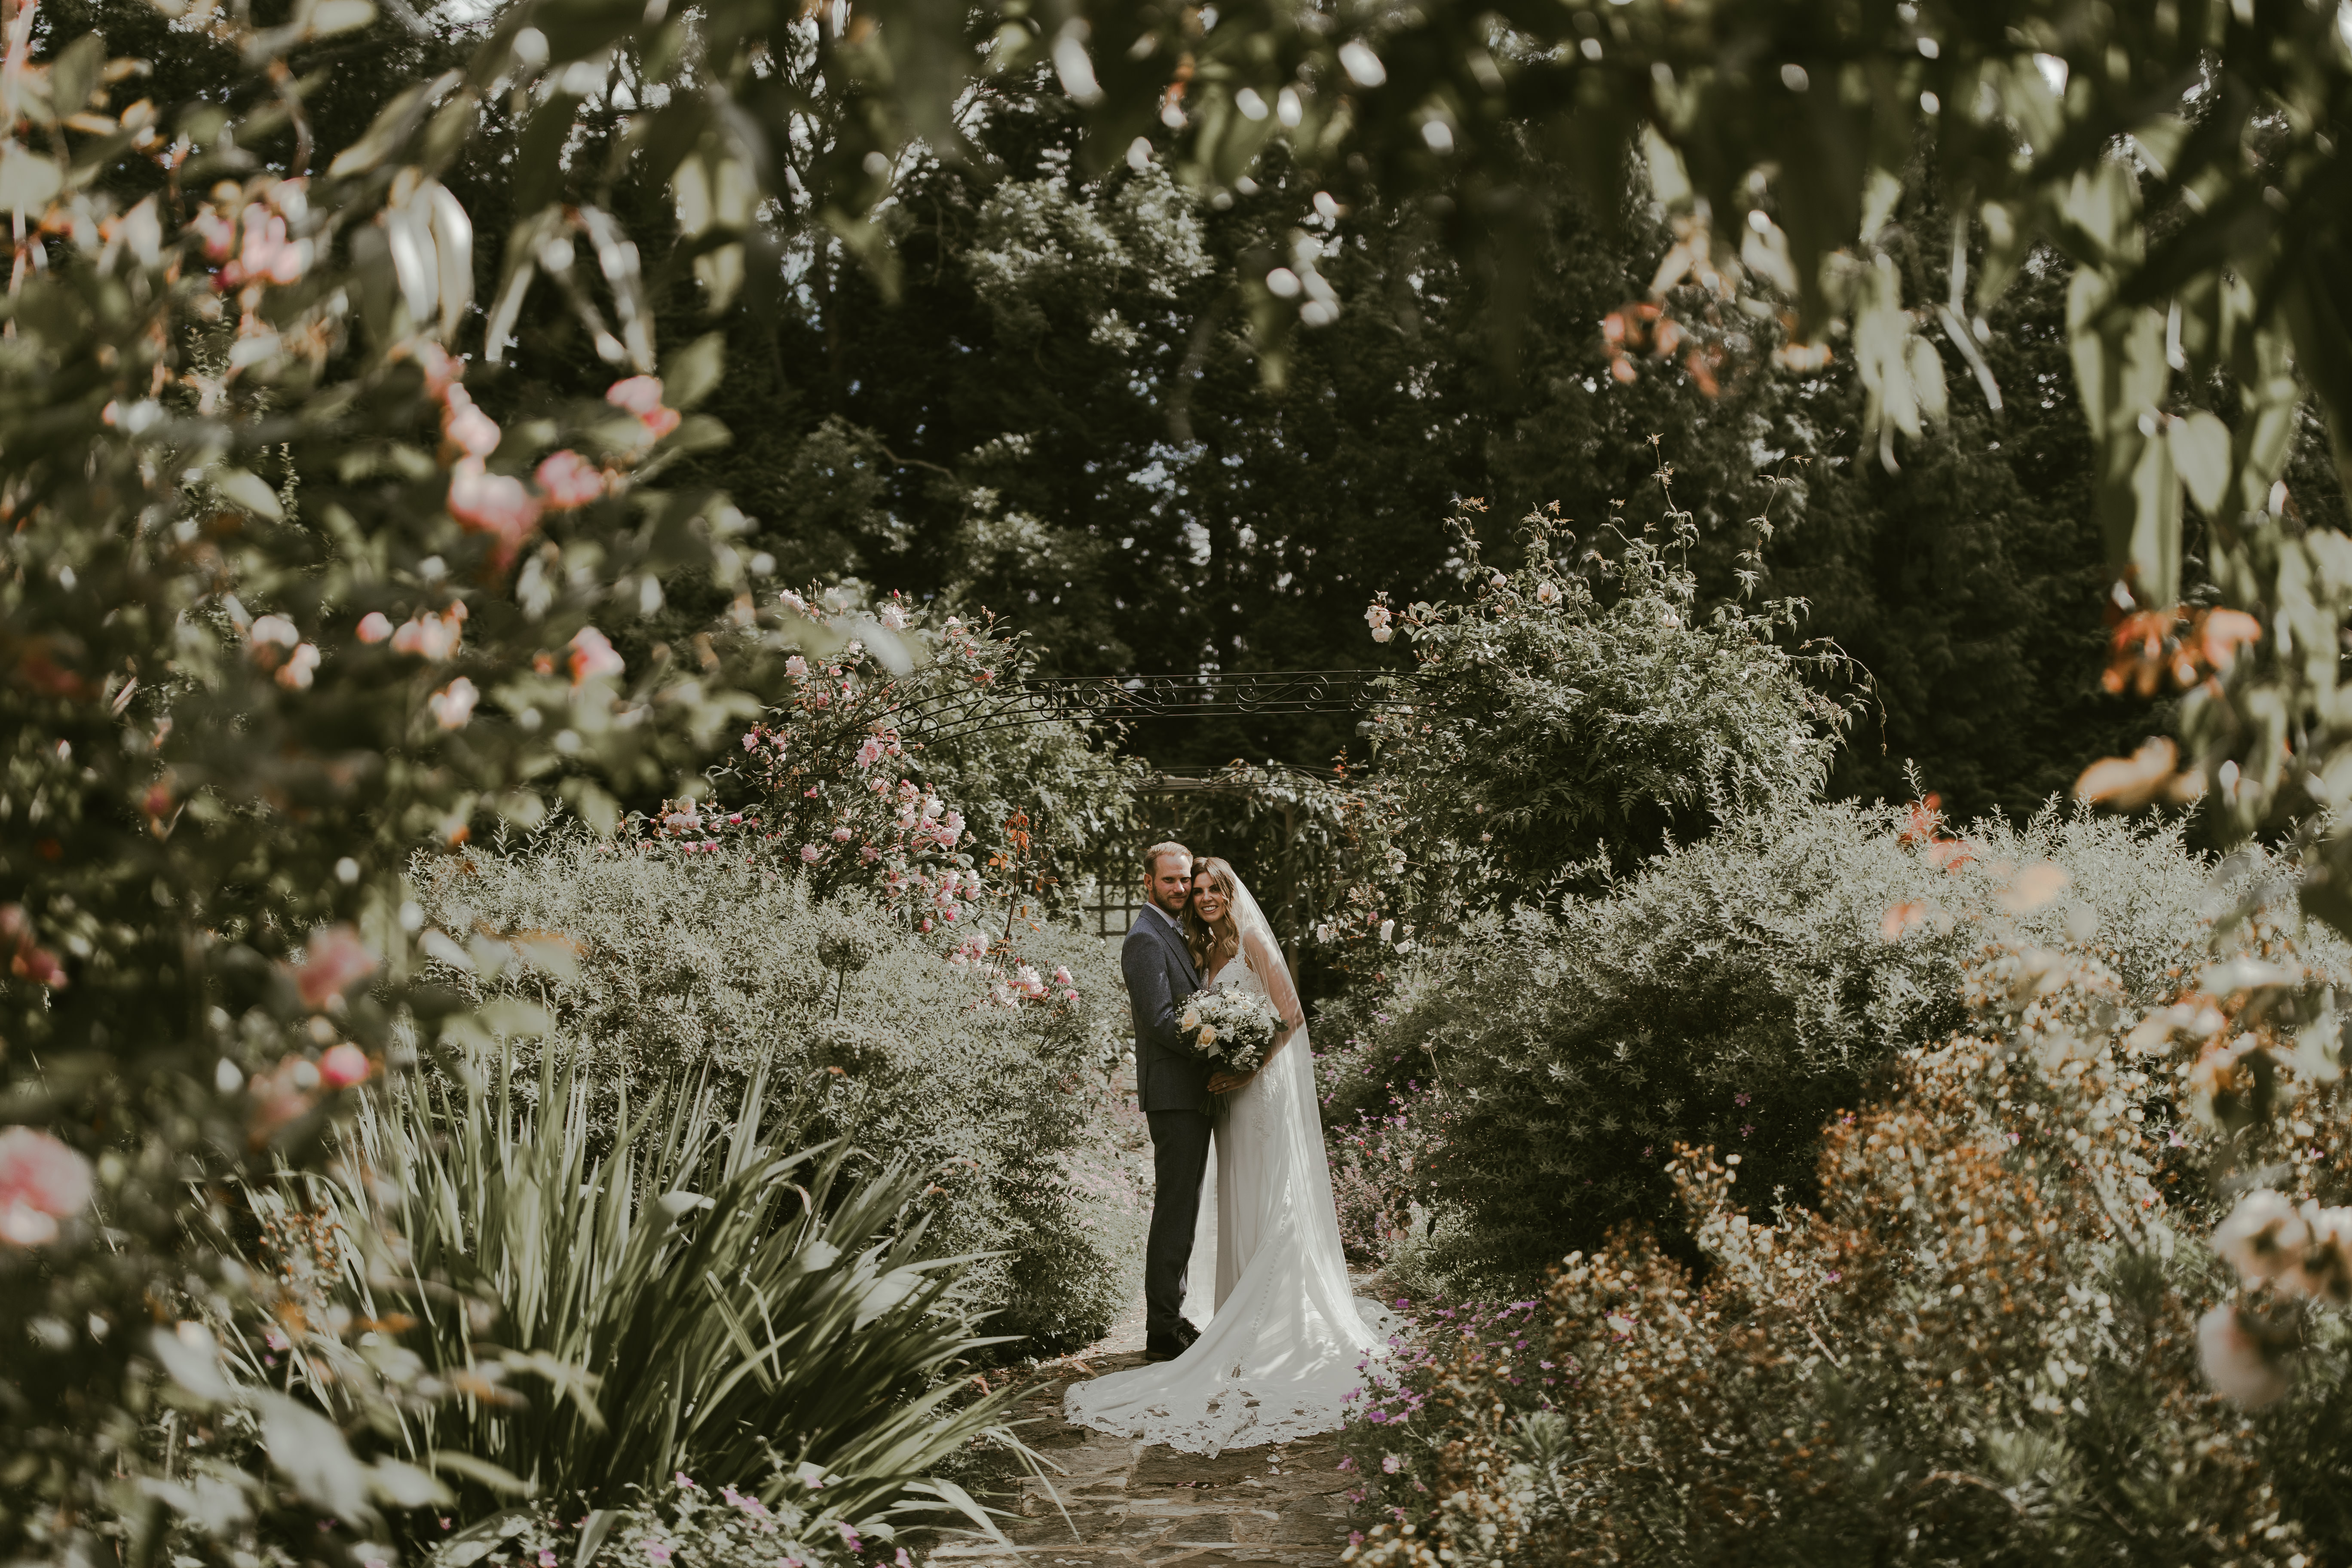 Married couple pose for photo surrounded by bushes at Hayne House